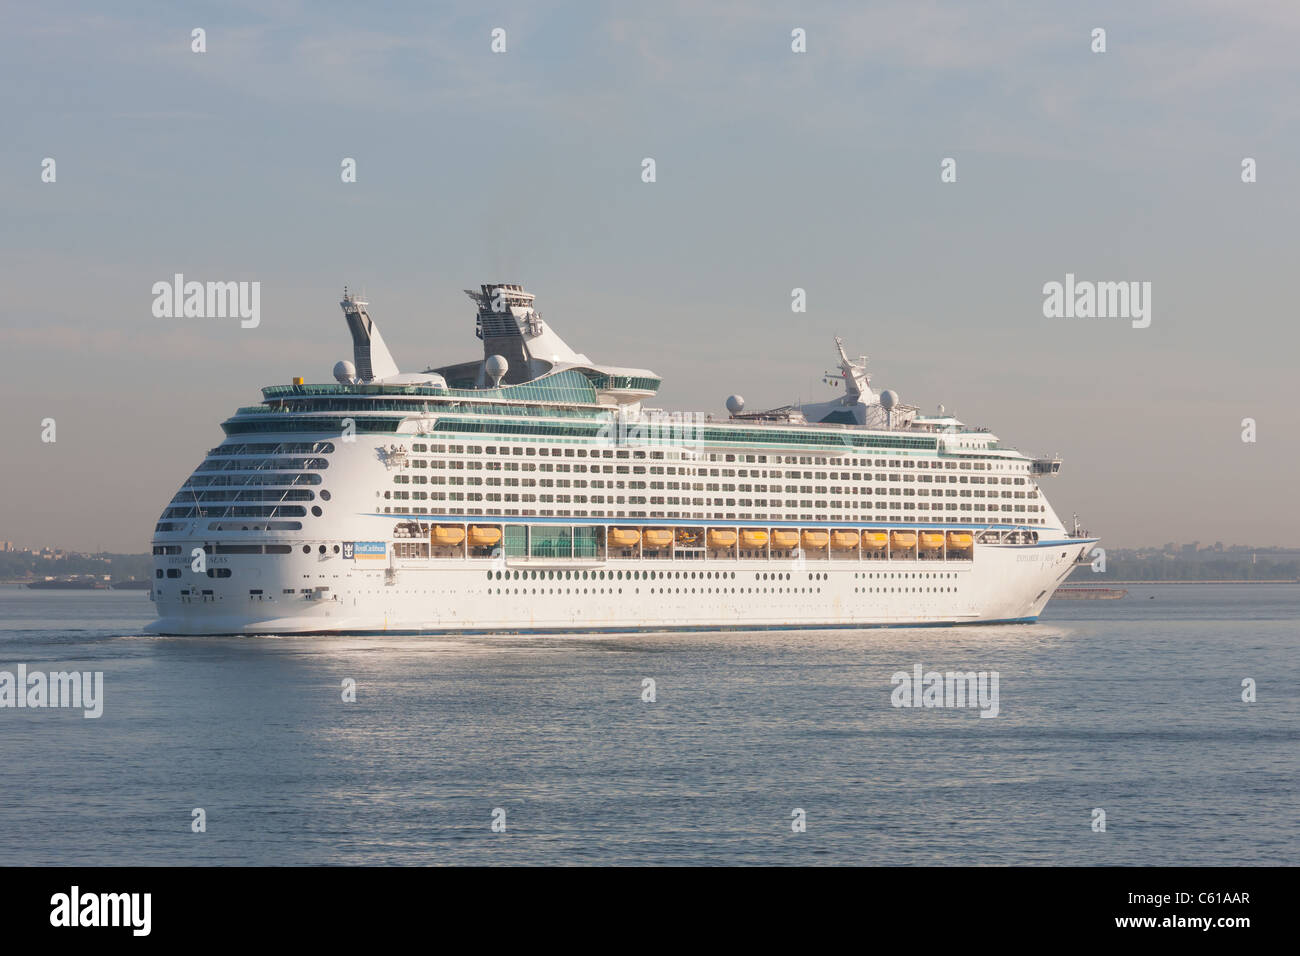 Royal Caribbean cruise ship Explorer of the Seas in New York Harbor. - Stock Image